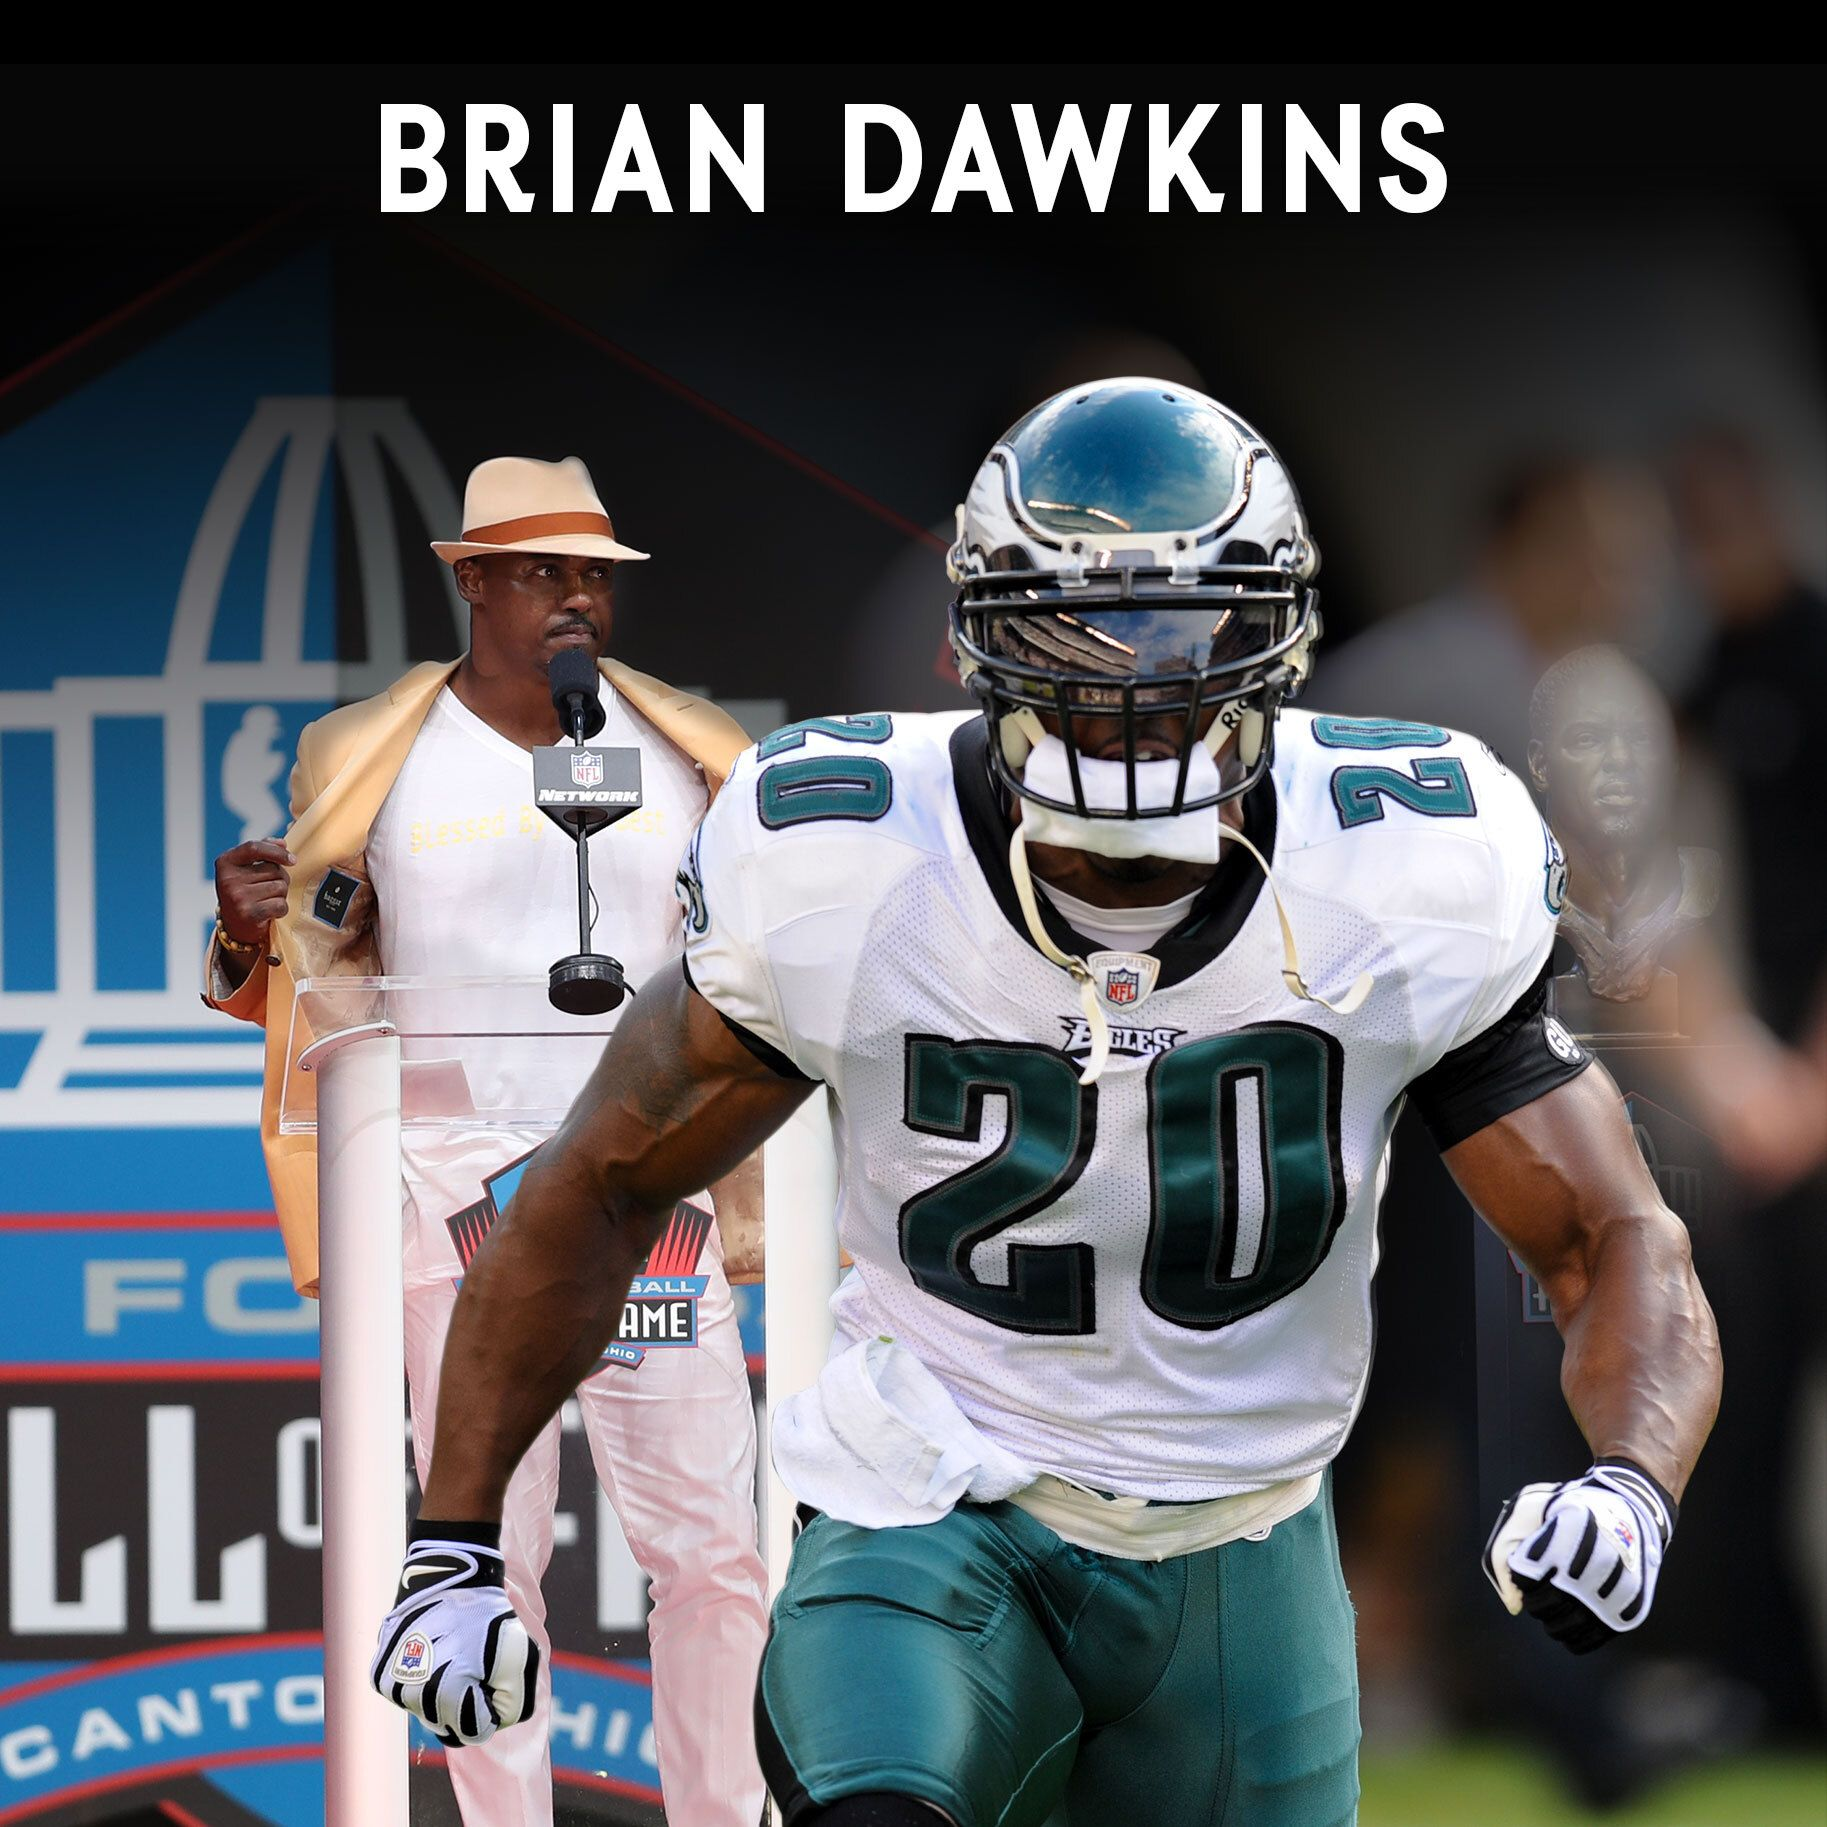 Brian Dawkins' legendary quest to the Pro Football Hall of Fame